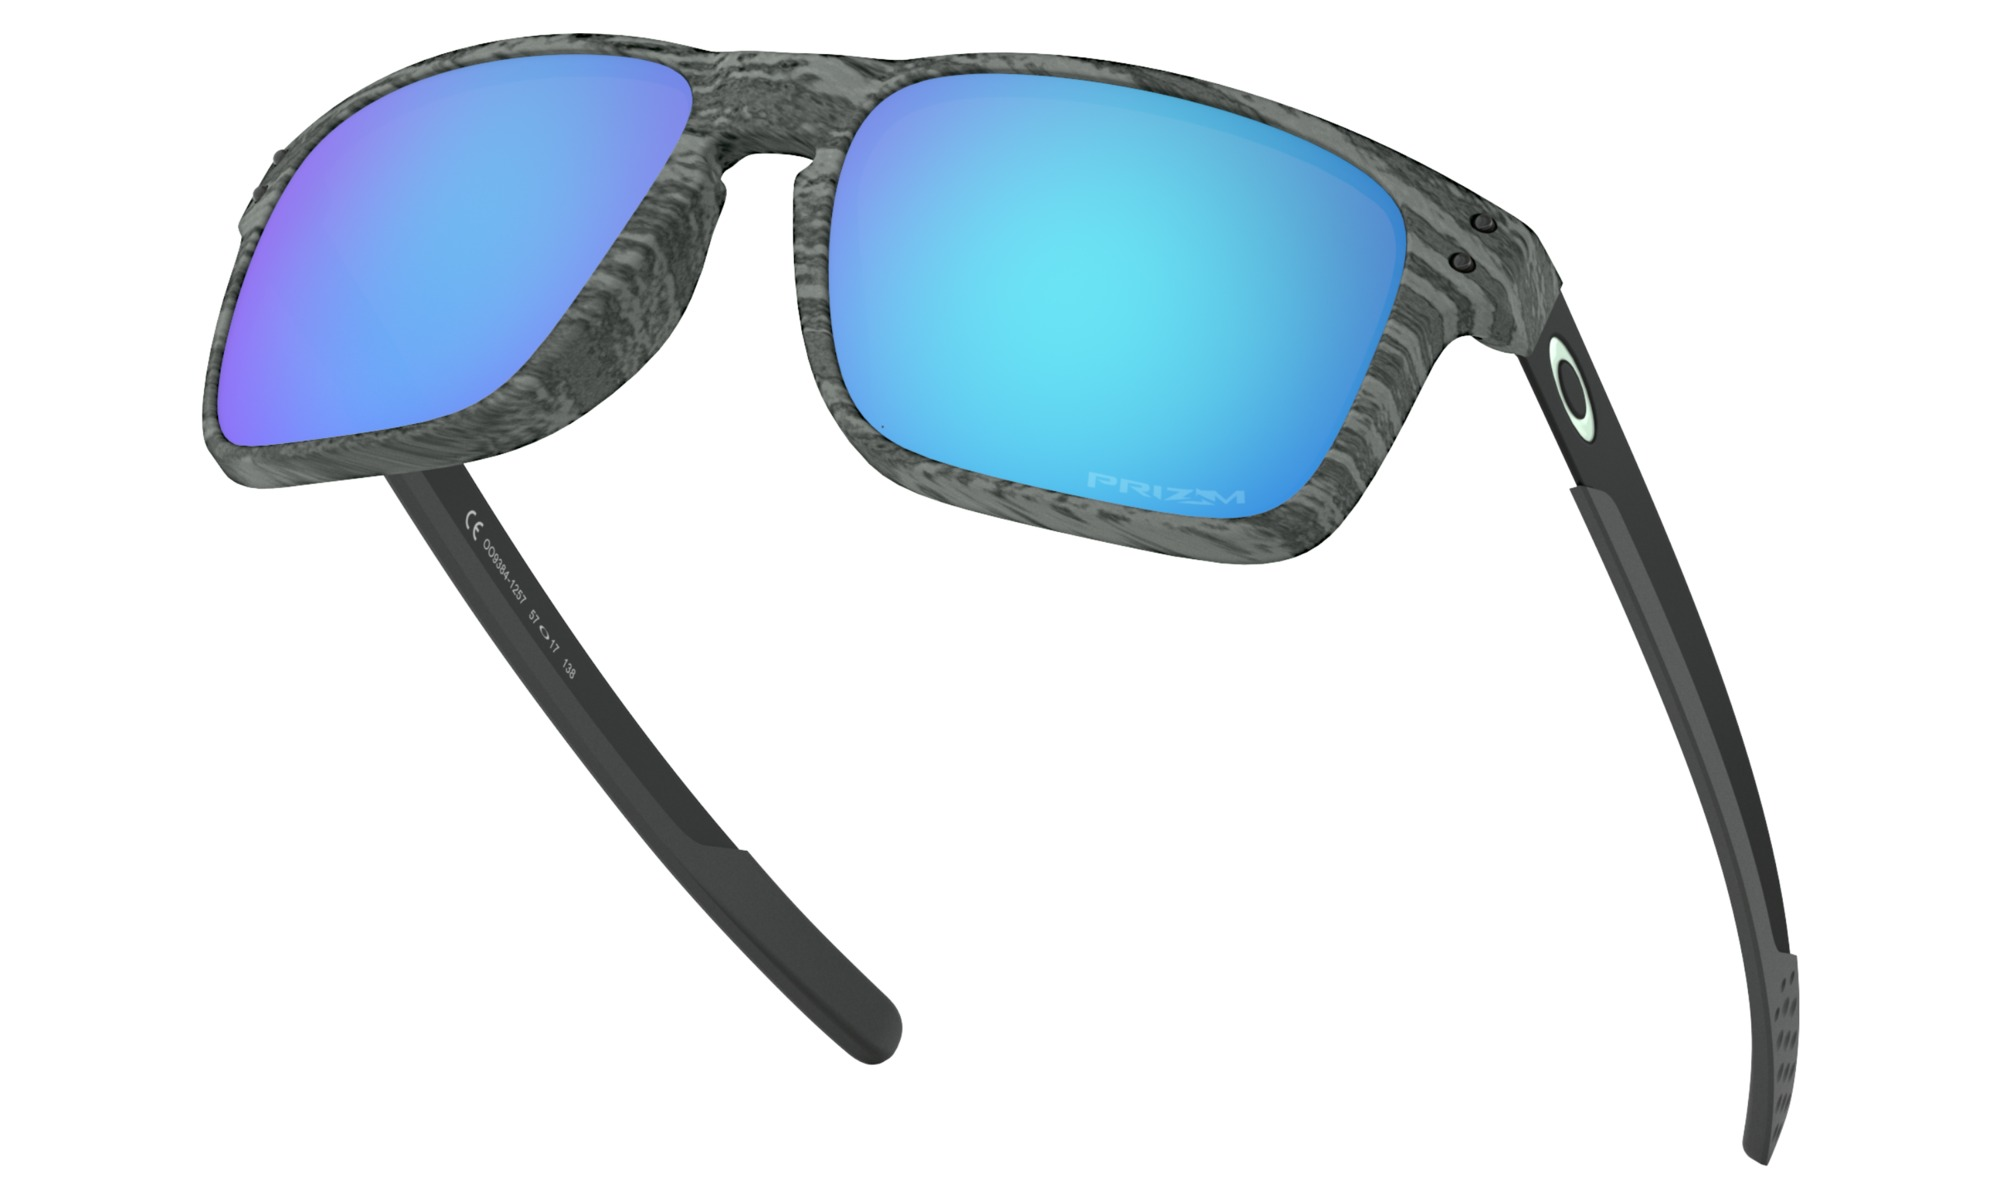 f4a2f609f5 Oakley Sunglasses Holbrook Mix Woodstation Collection   Frostwood   Prizm  Sapphire   Ref. OO9384-